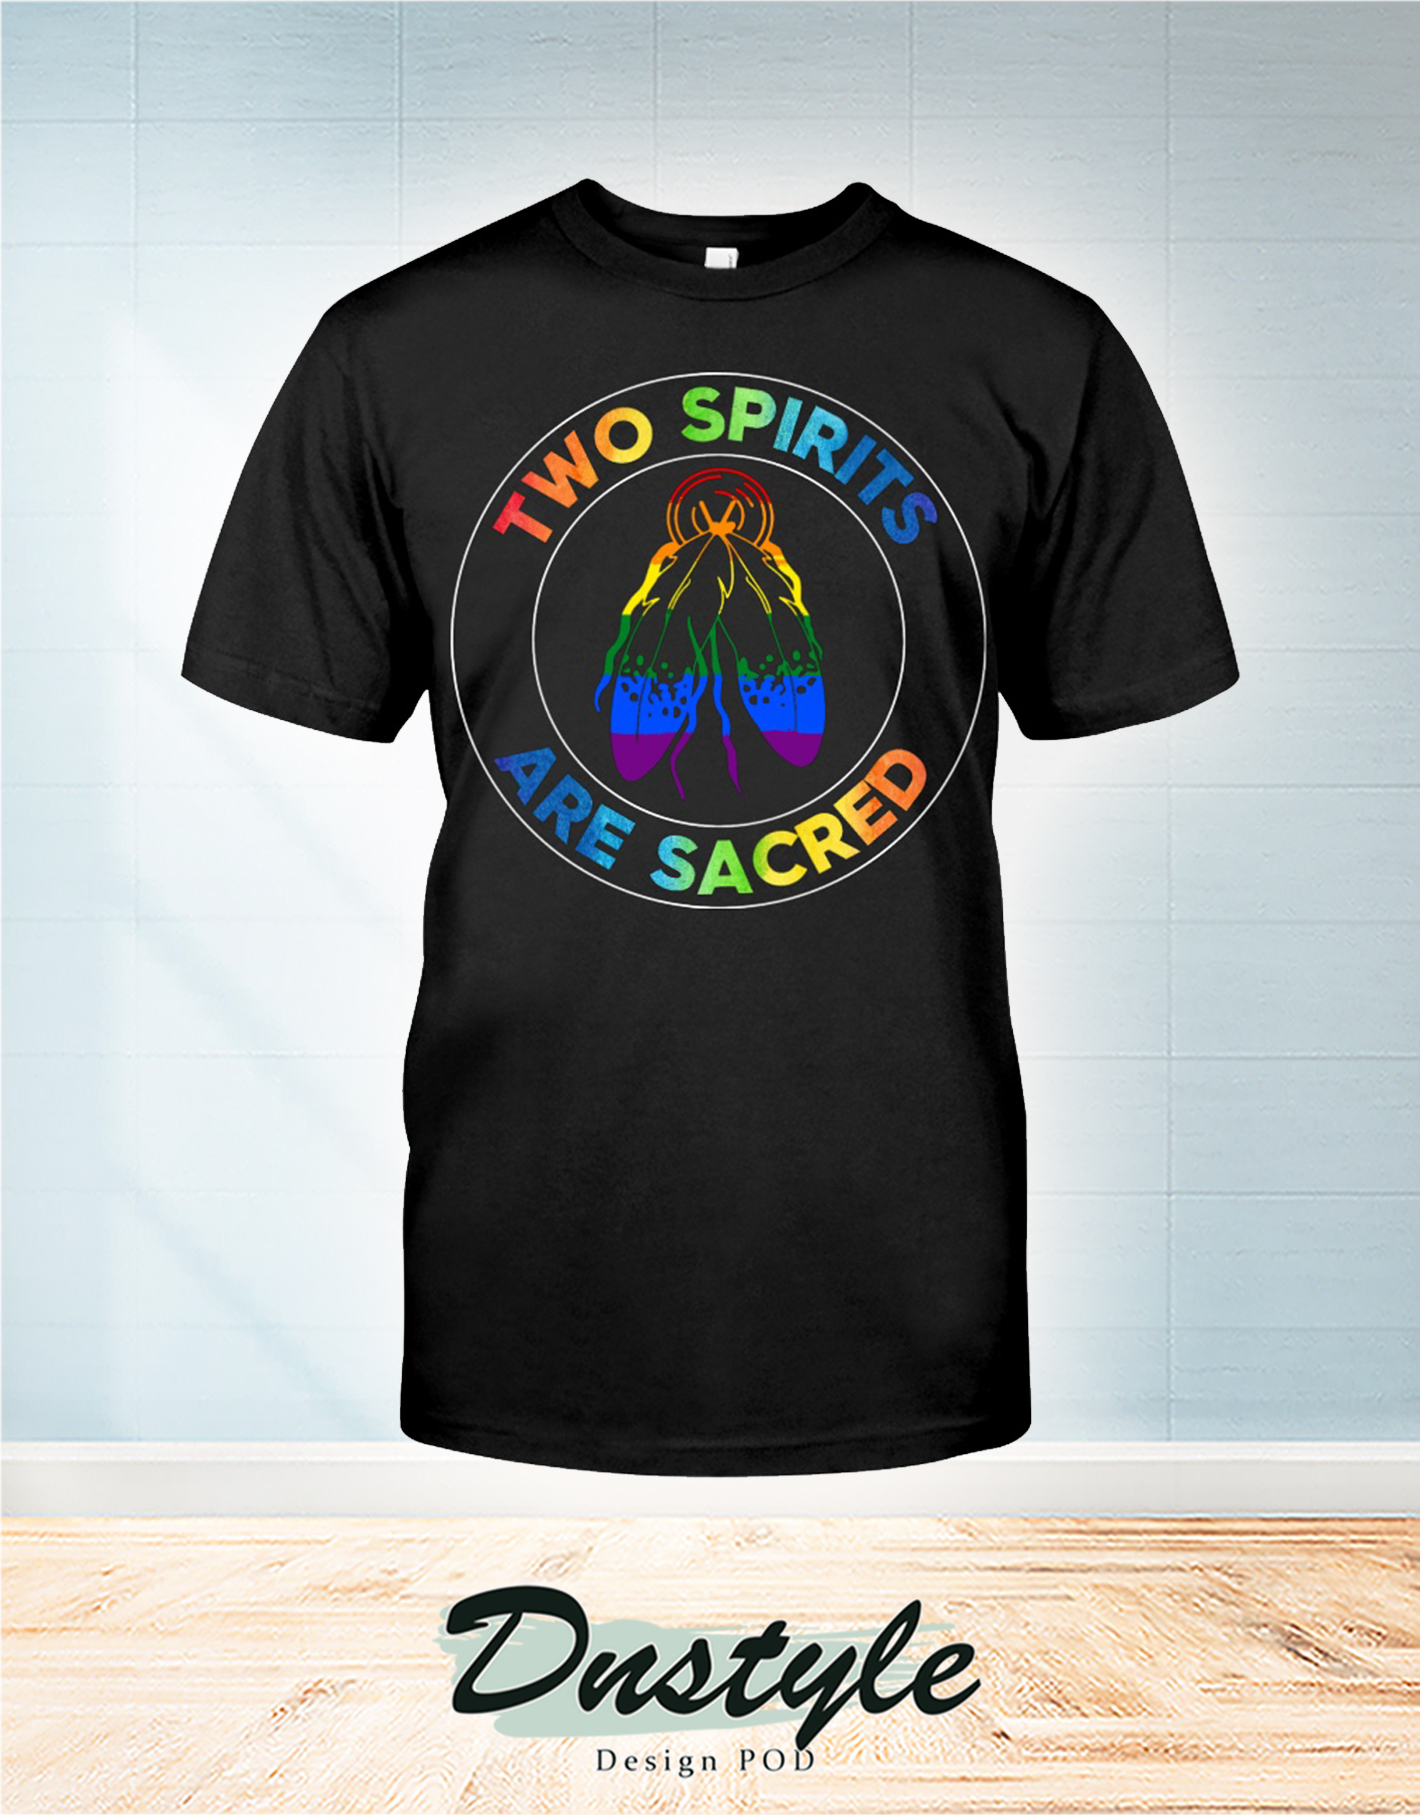 American native two spirits are sacred t-shirt